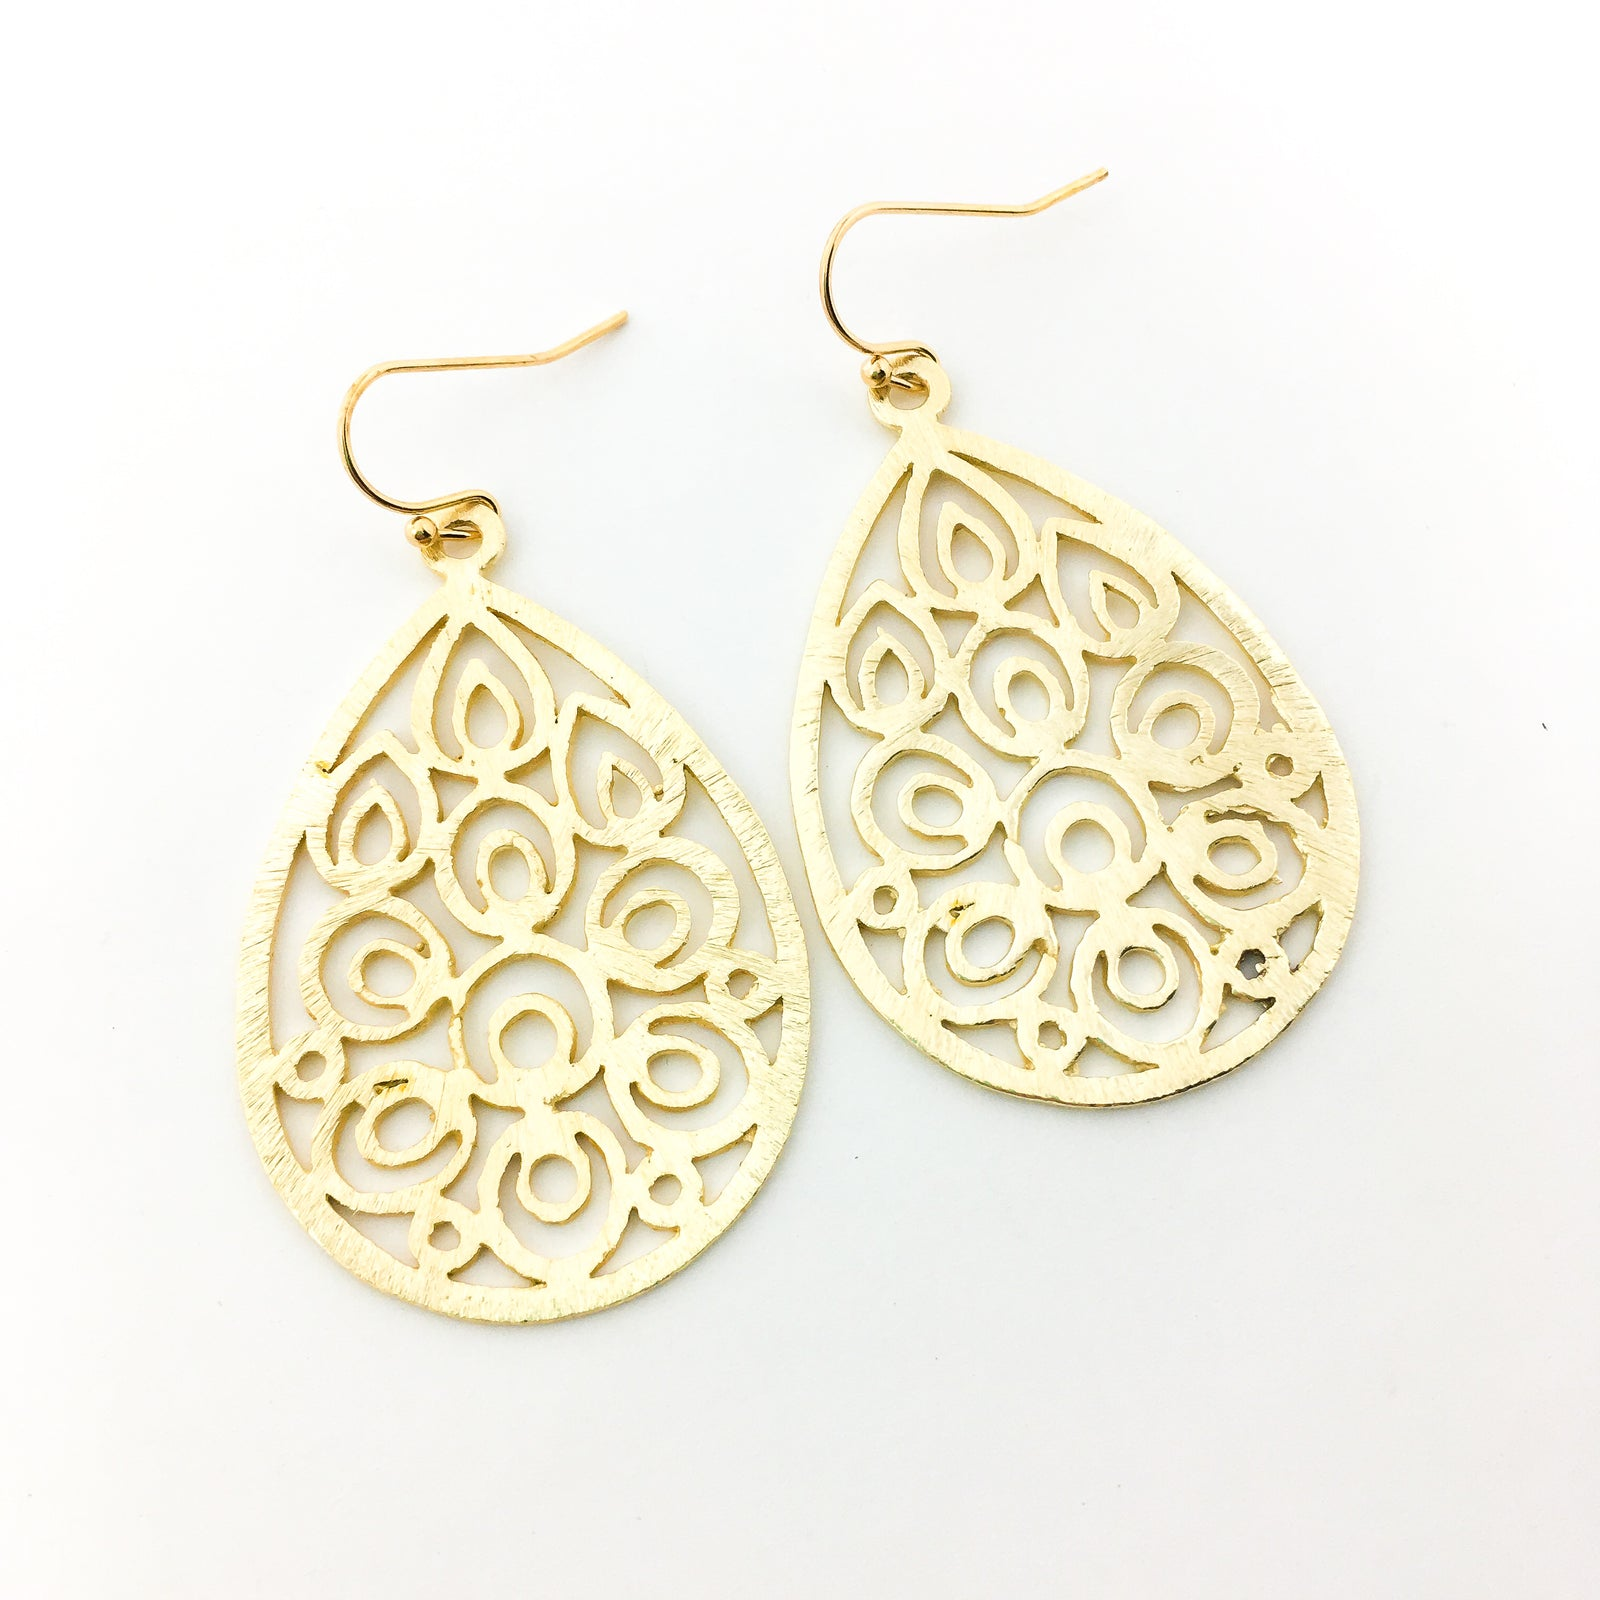 BRUSHED FLORAL DROP EARRINGS | 14K GOLD-FILLED